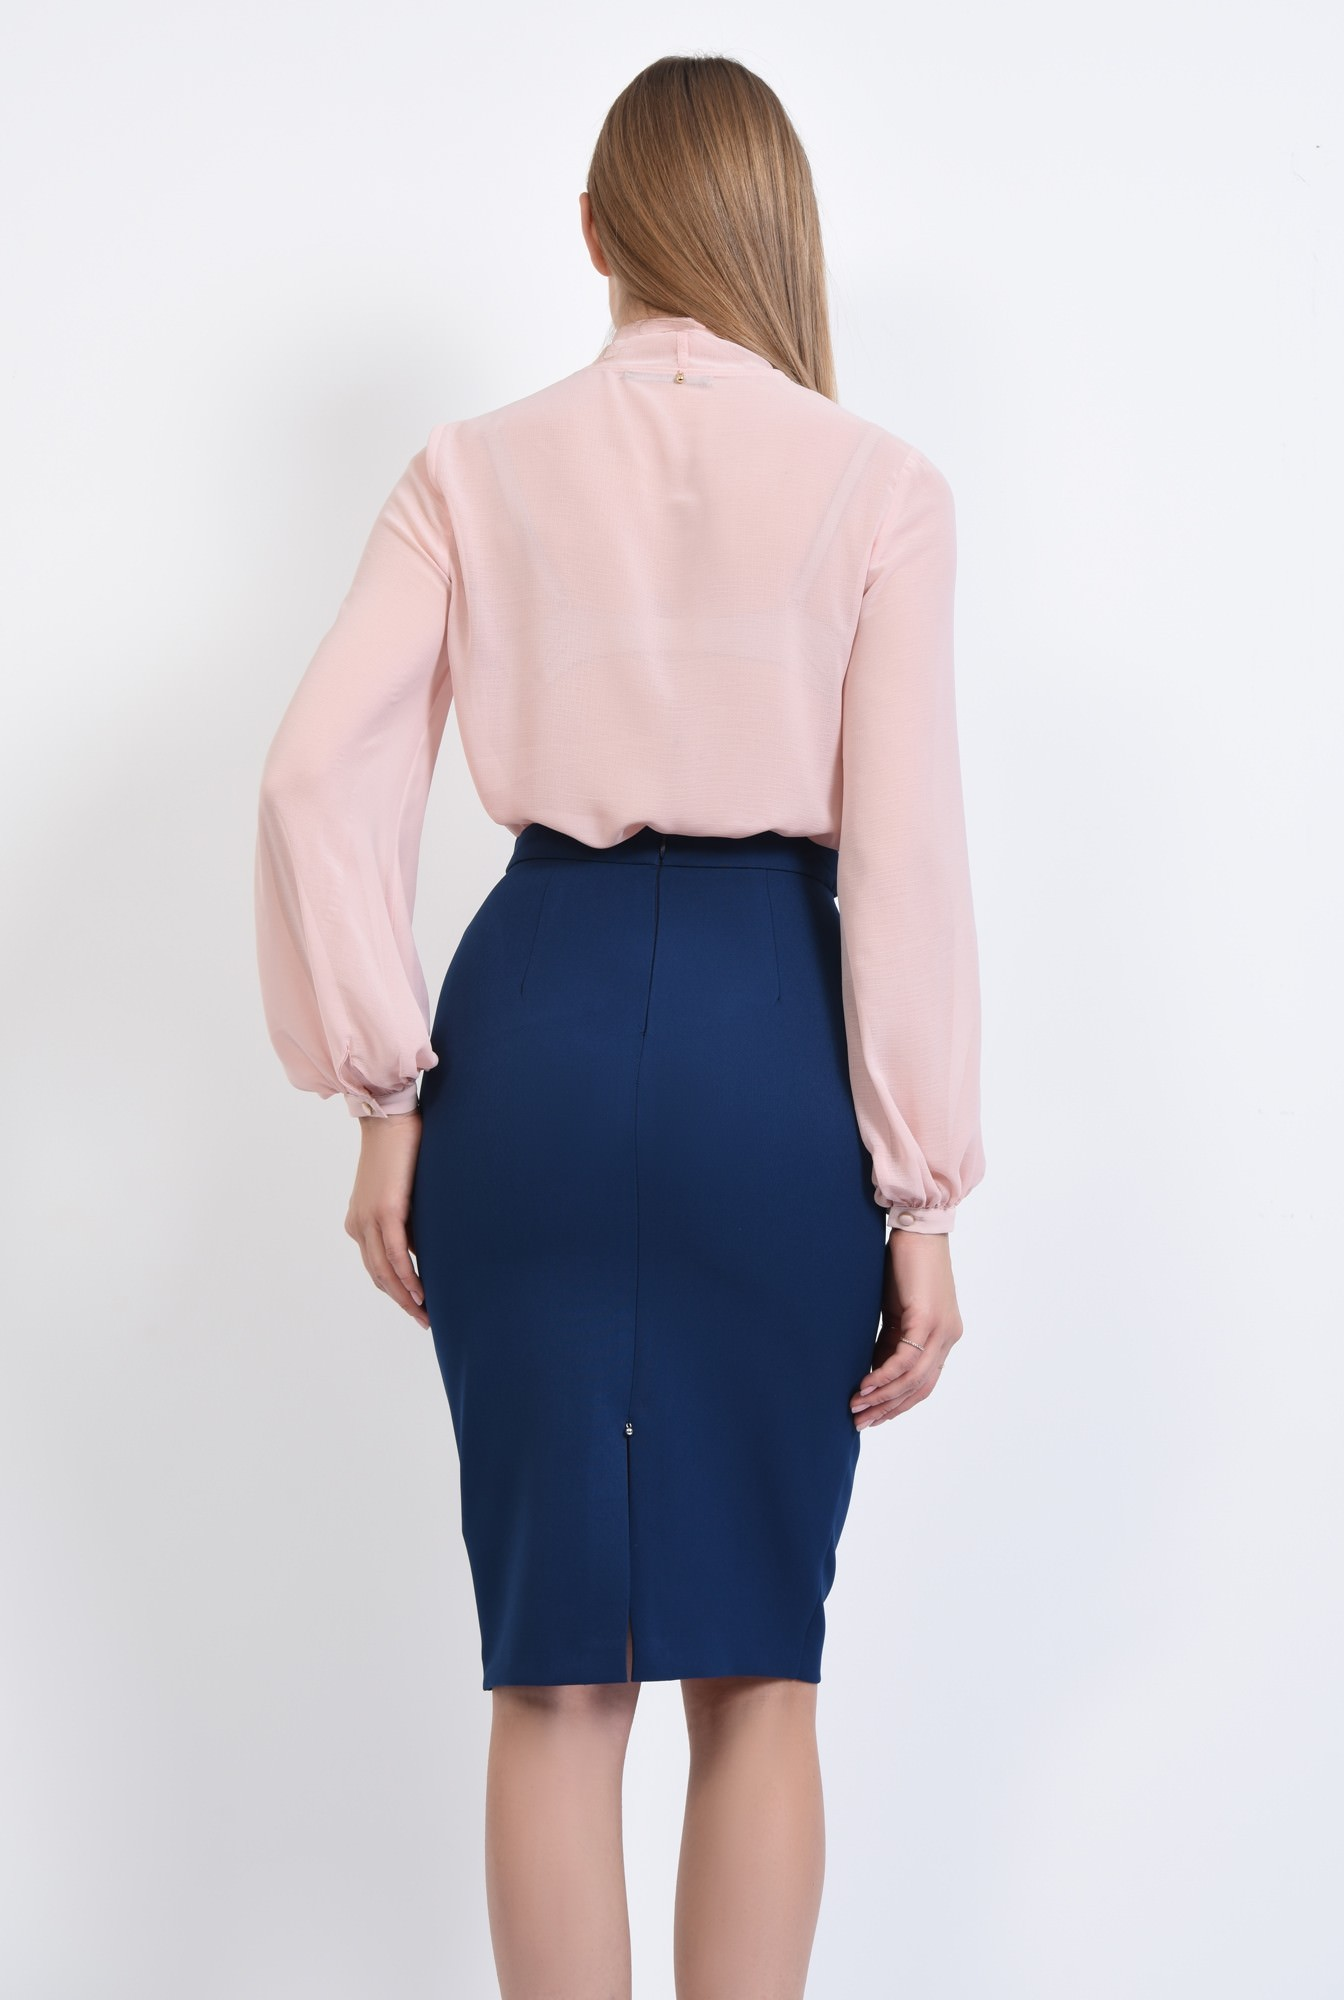 1 - BLUZA OFFICE BL 290-ROZ